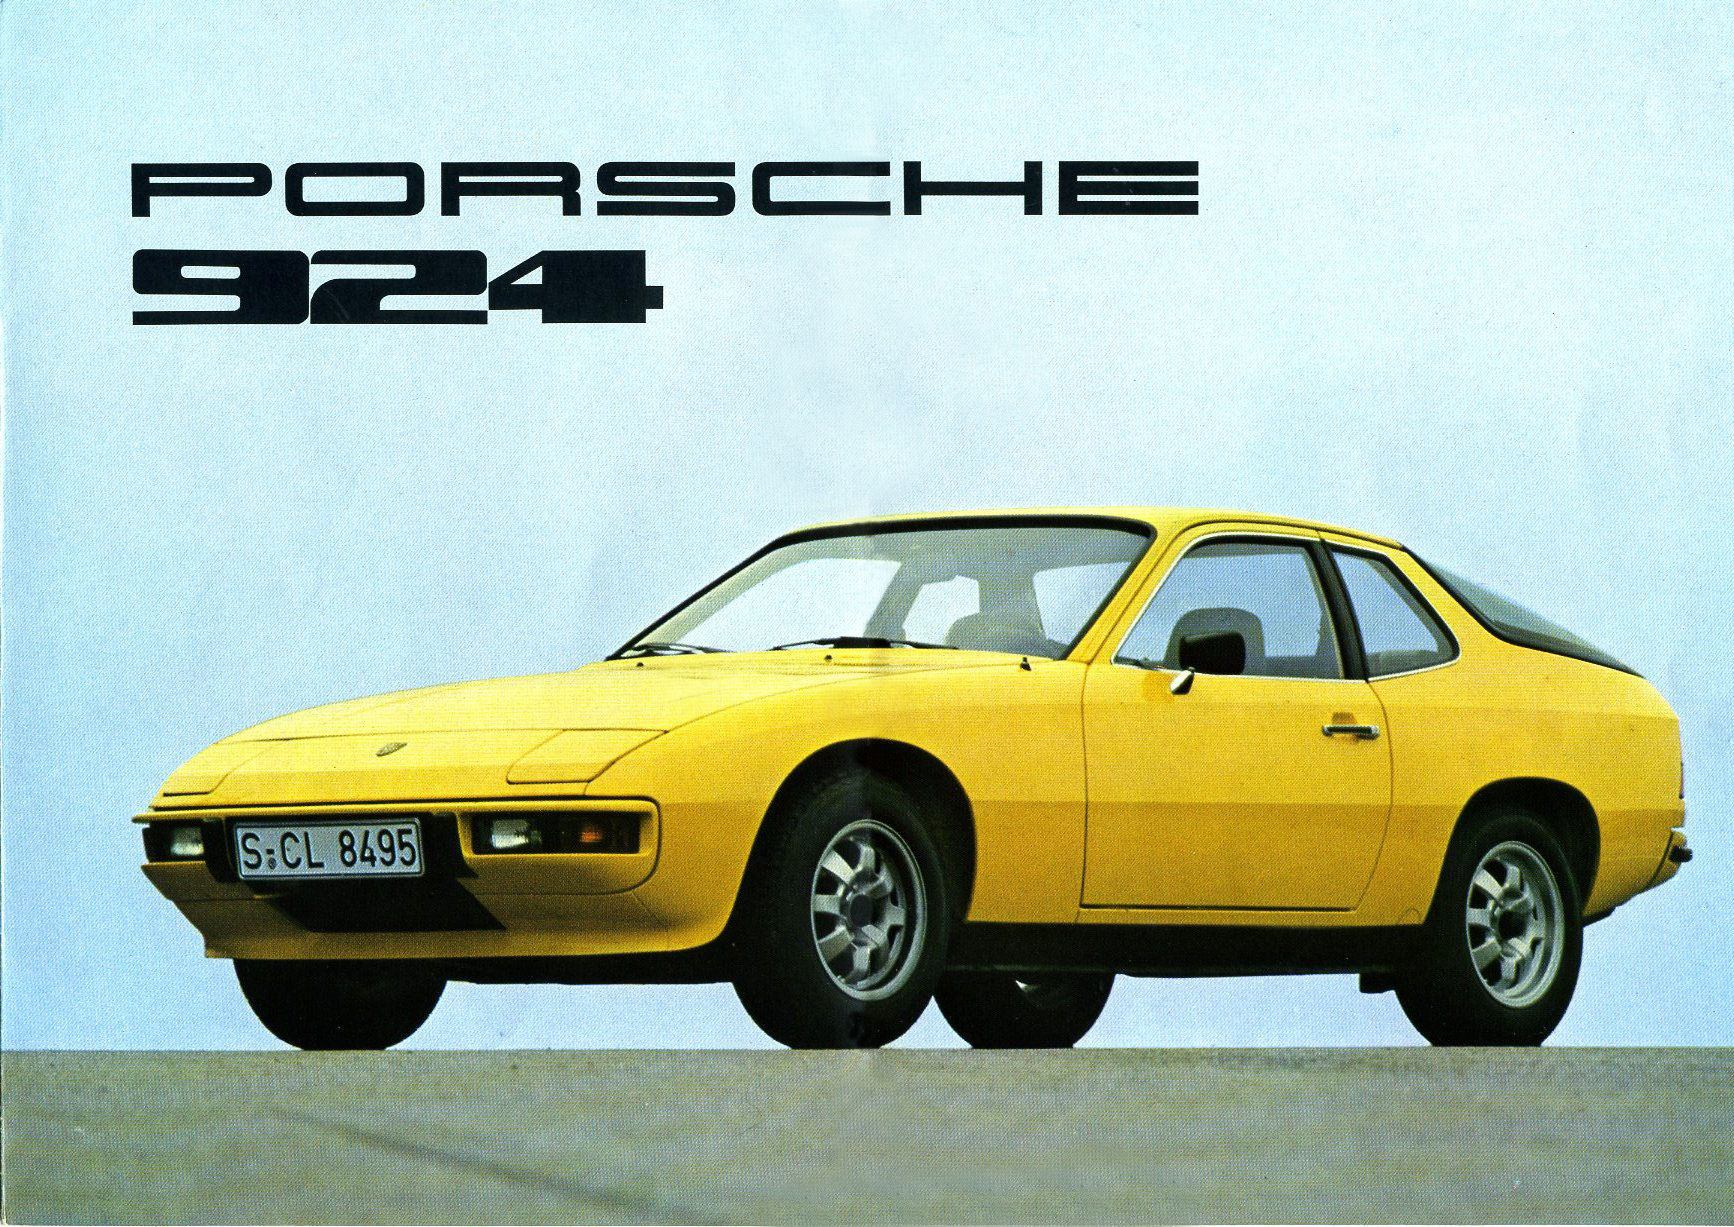 vw archives 1975 porsche 924 brochure. Black Bedroom Furniture Sets. Home Design Ideas